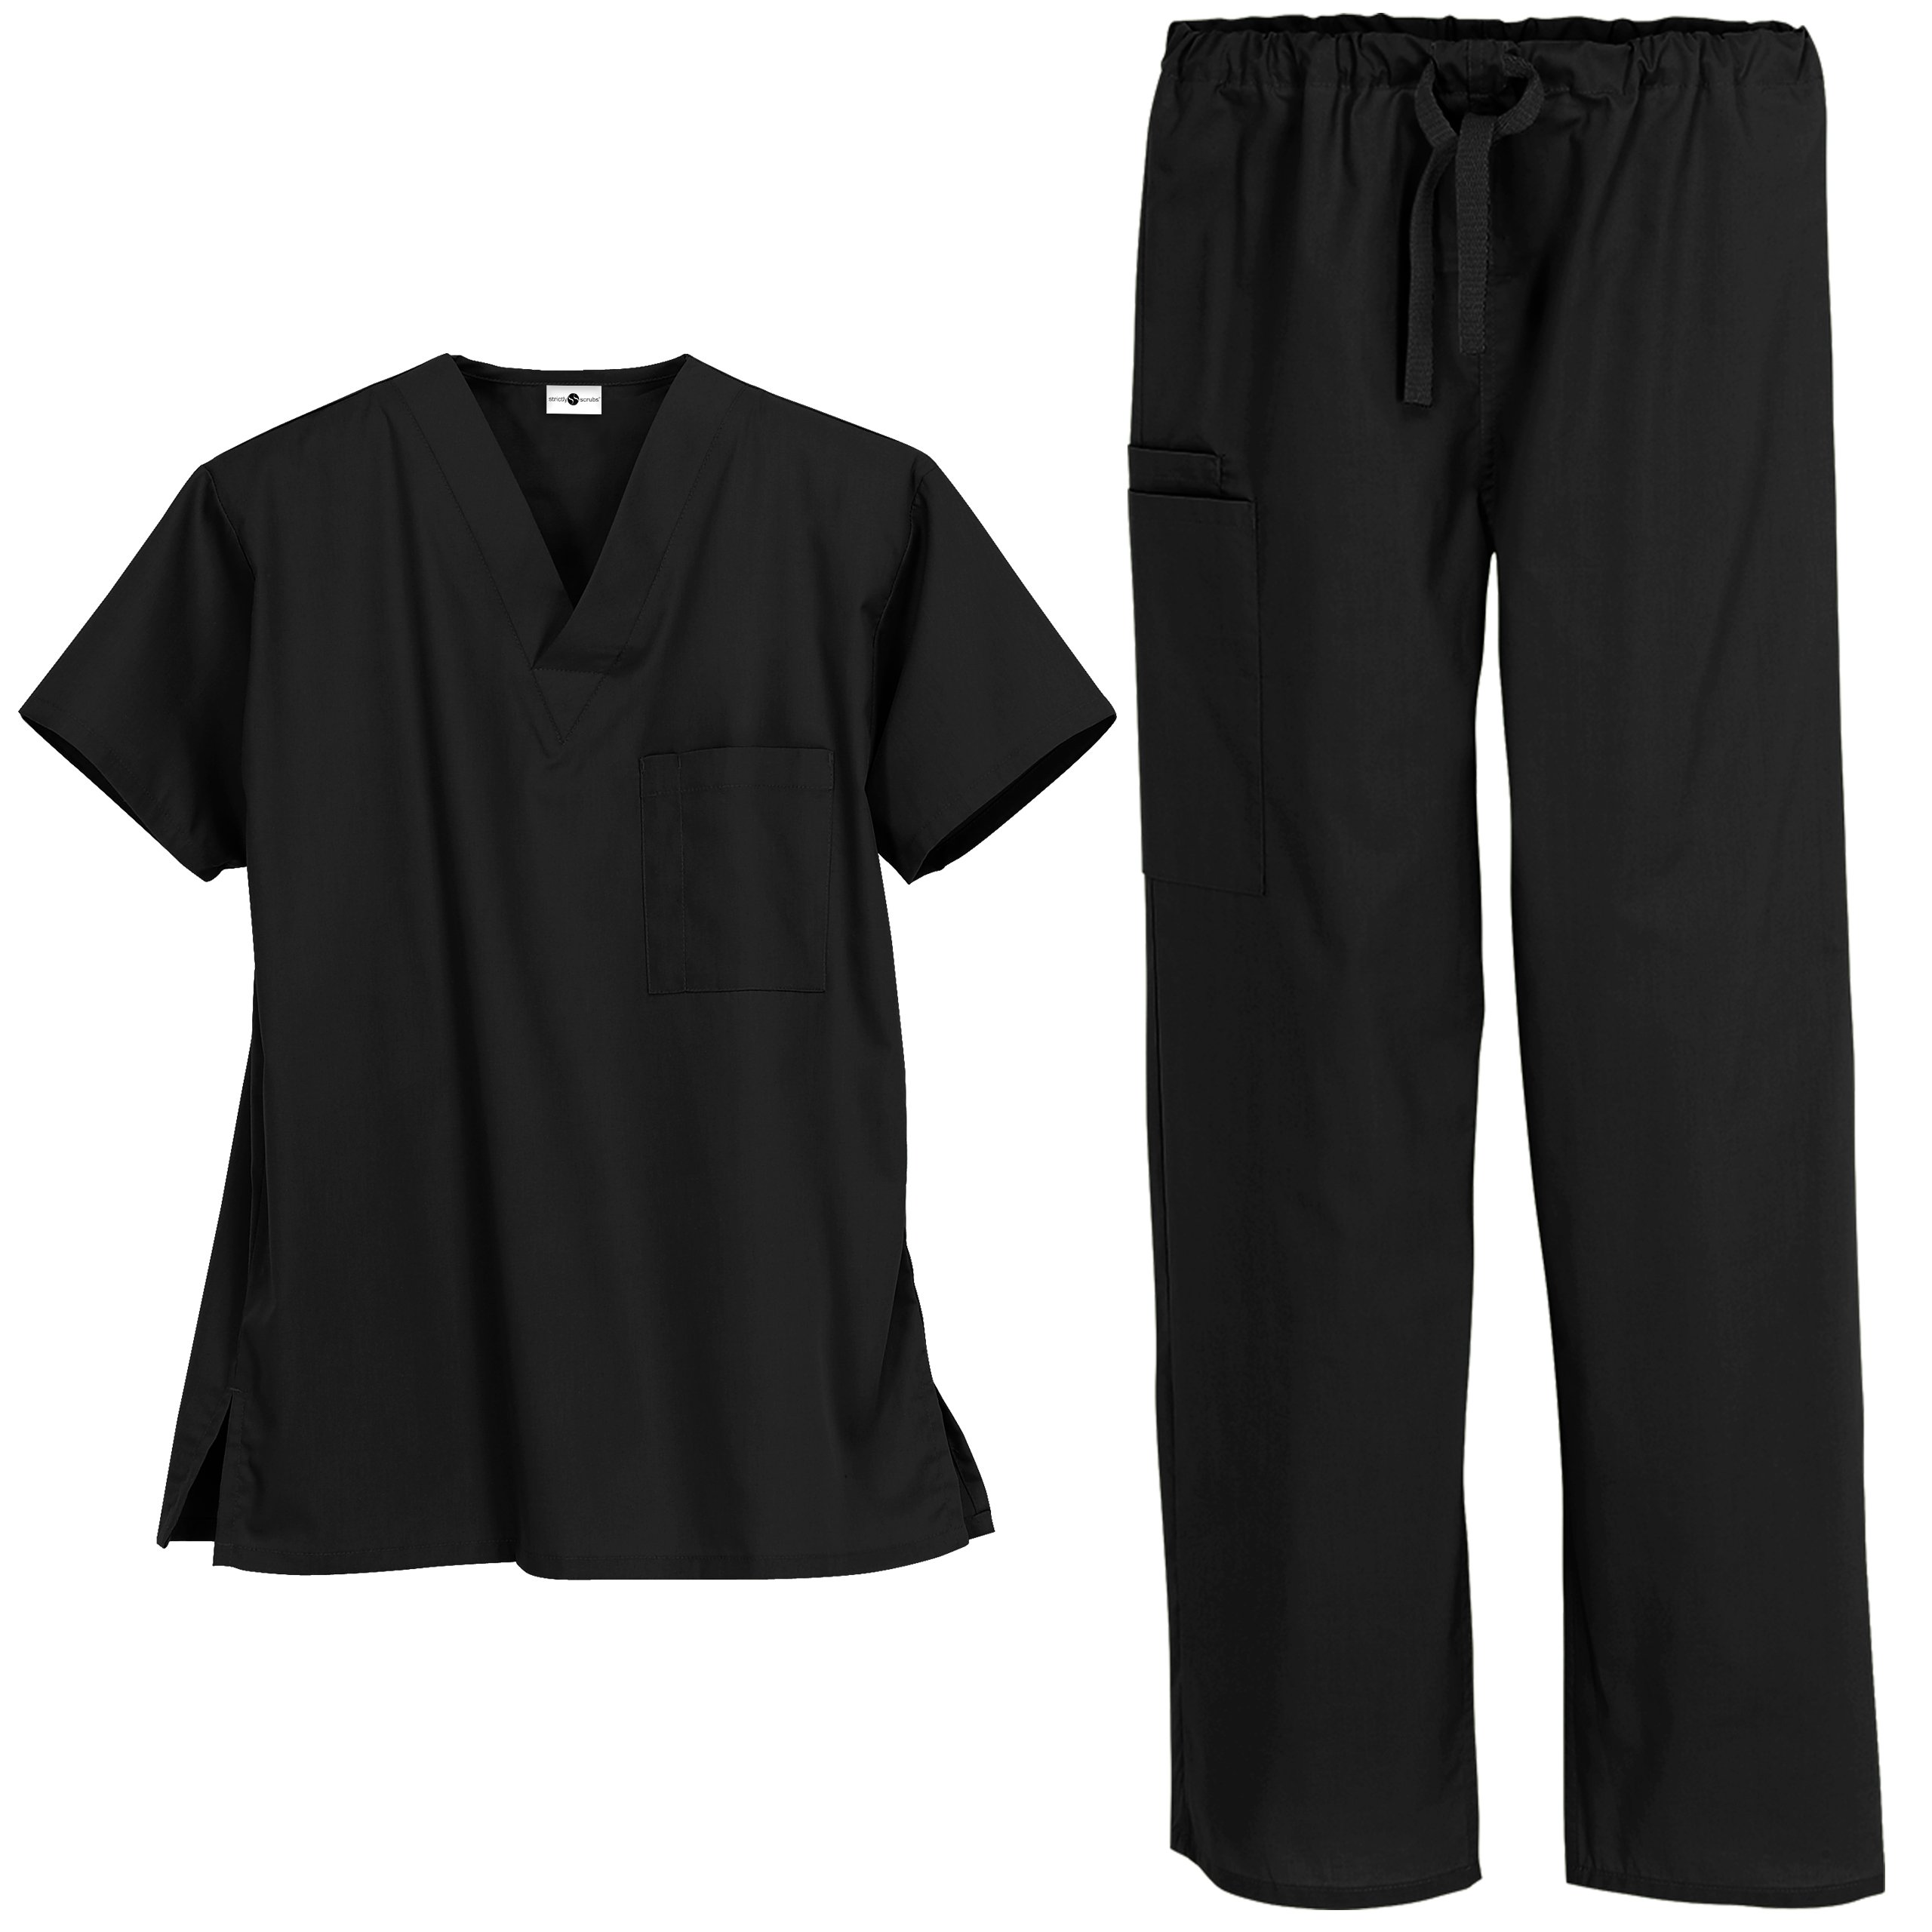 Strictly Scrubs Unisex Medical Uniform Set (X-Large, Black)